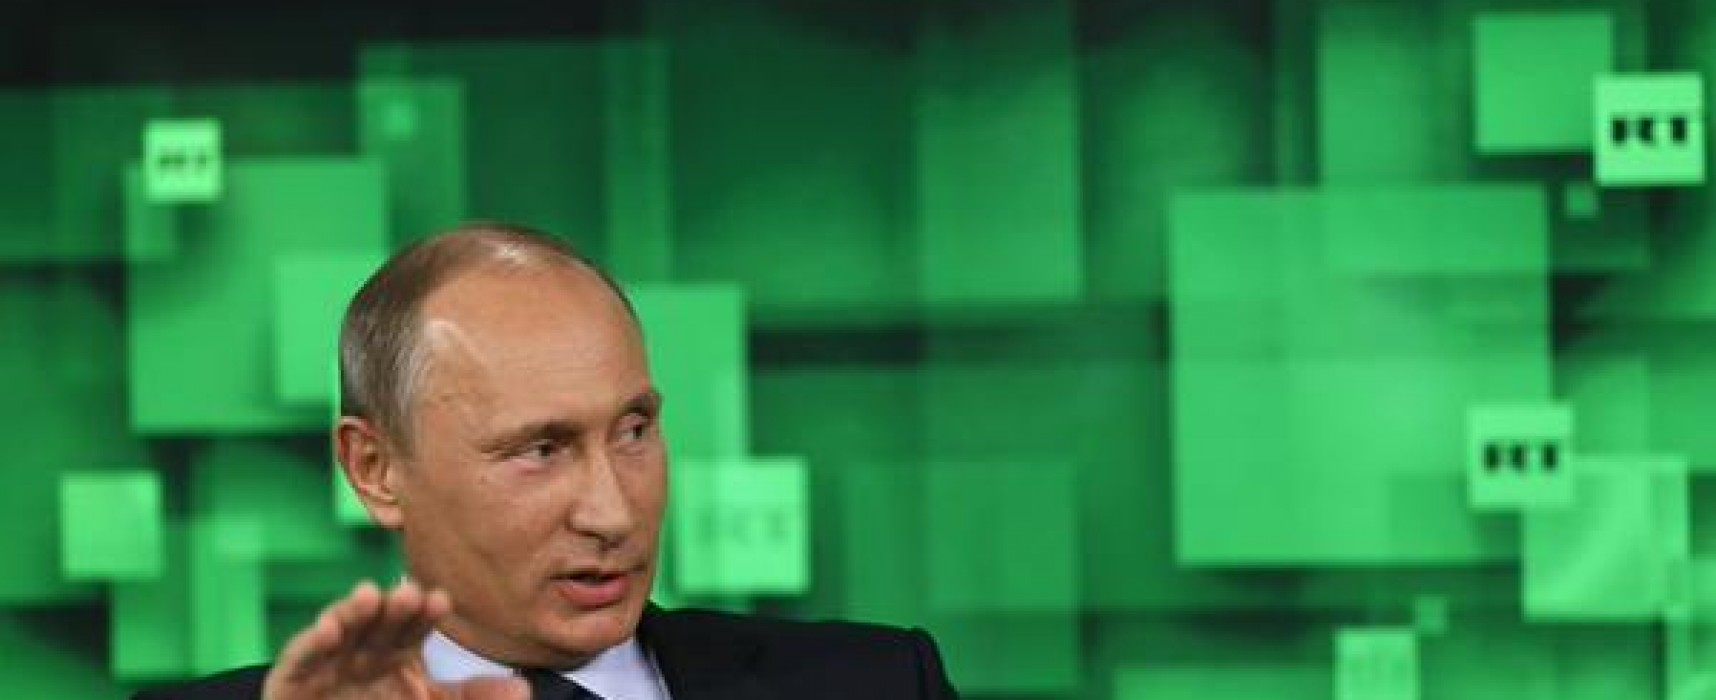 Putin Said to Open Irish Front Against 'Anglo-Saxon' News